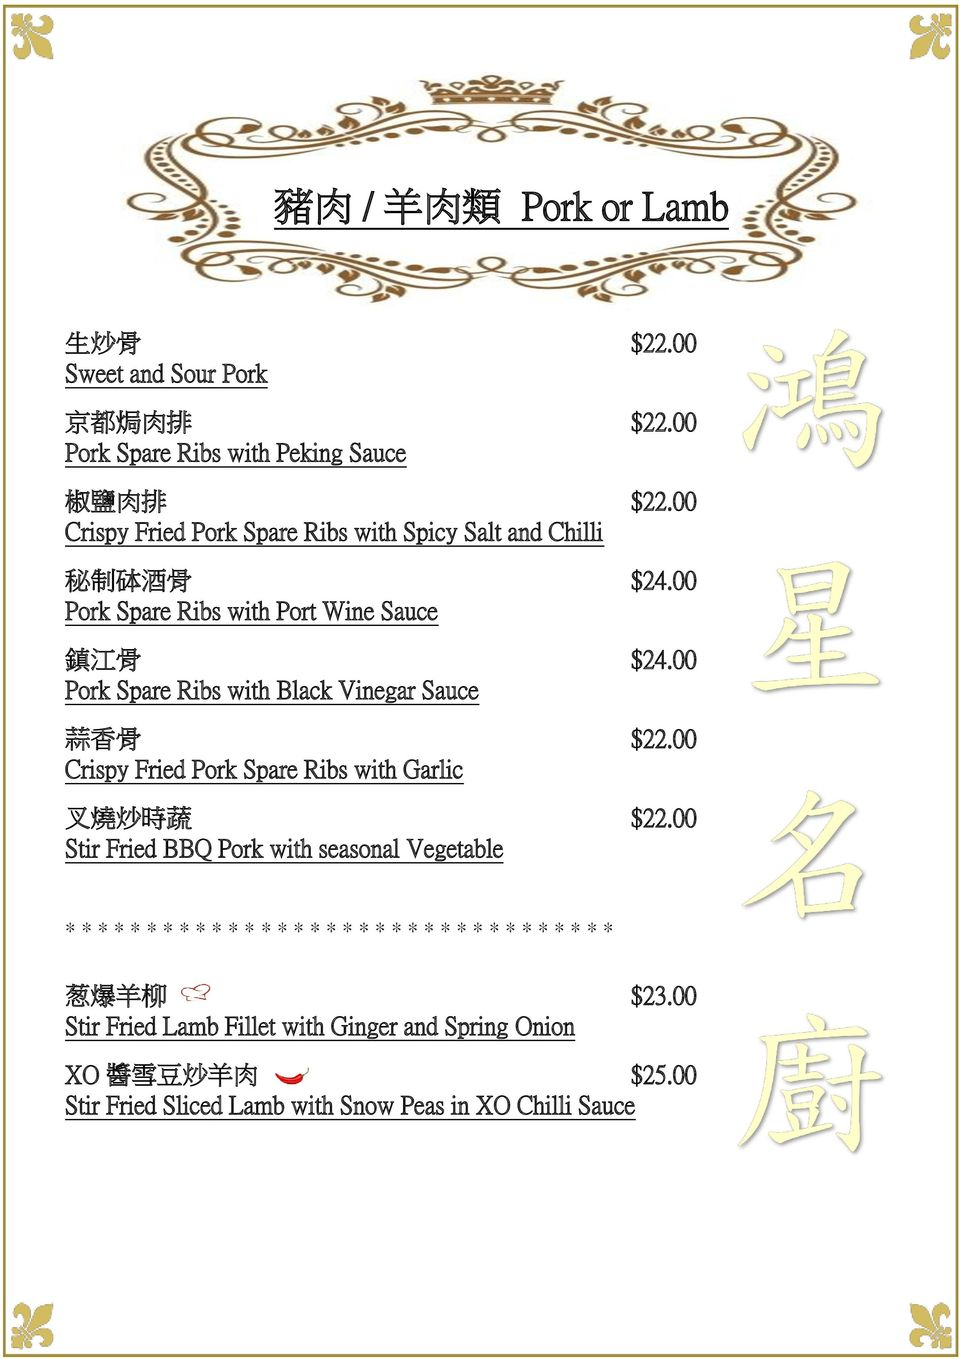 00 Pork Spare Ribs with Black Vinegar Sauce 蒜 香 骨 $22.00 Crispy Fried Pork Spare Ribs with Garlic 叉 燒 炒 時 蔬 $22.